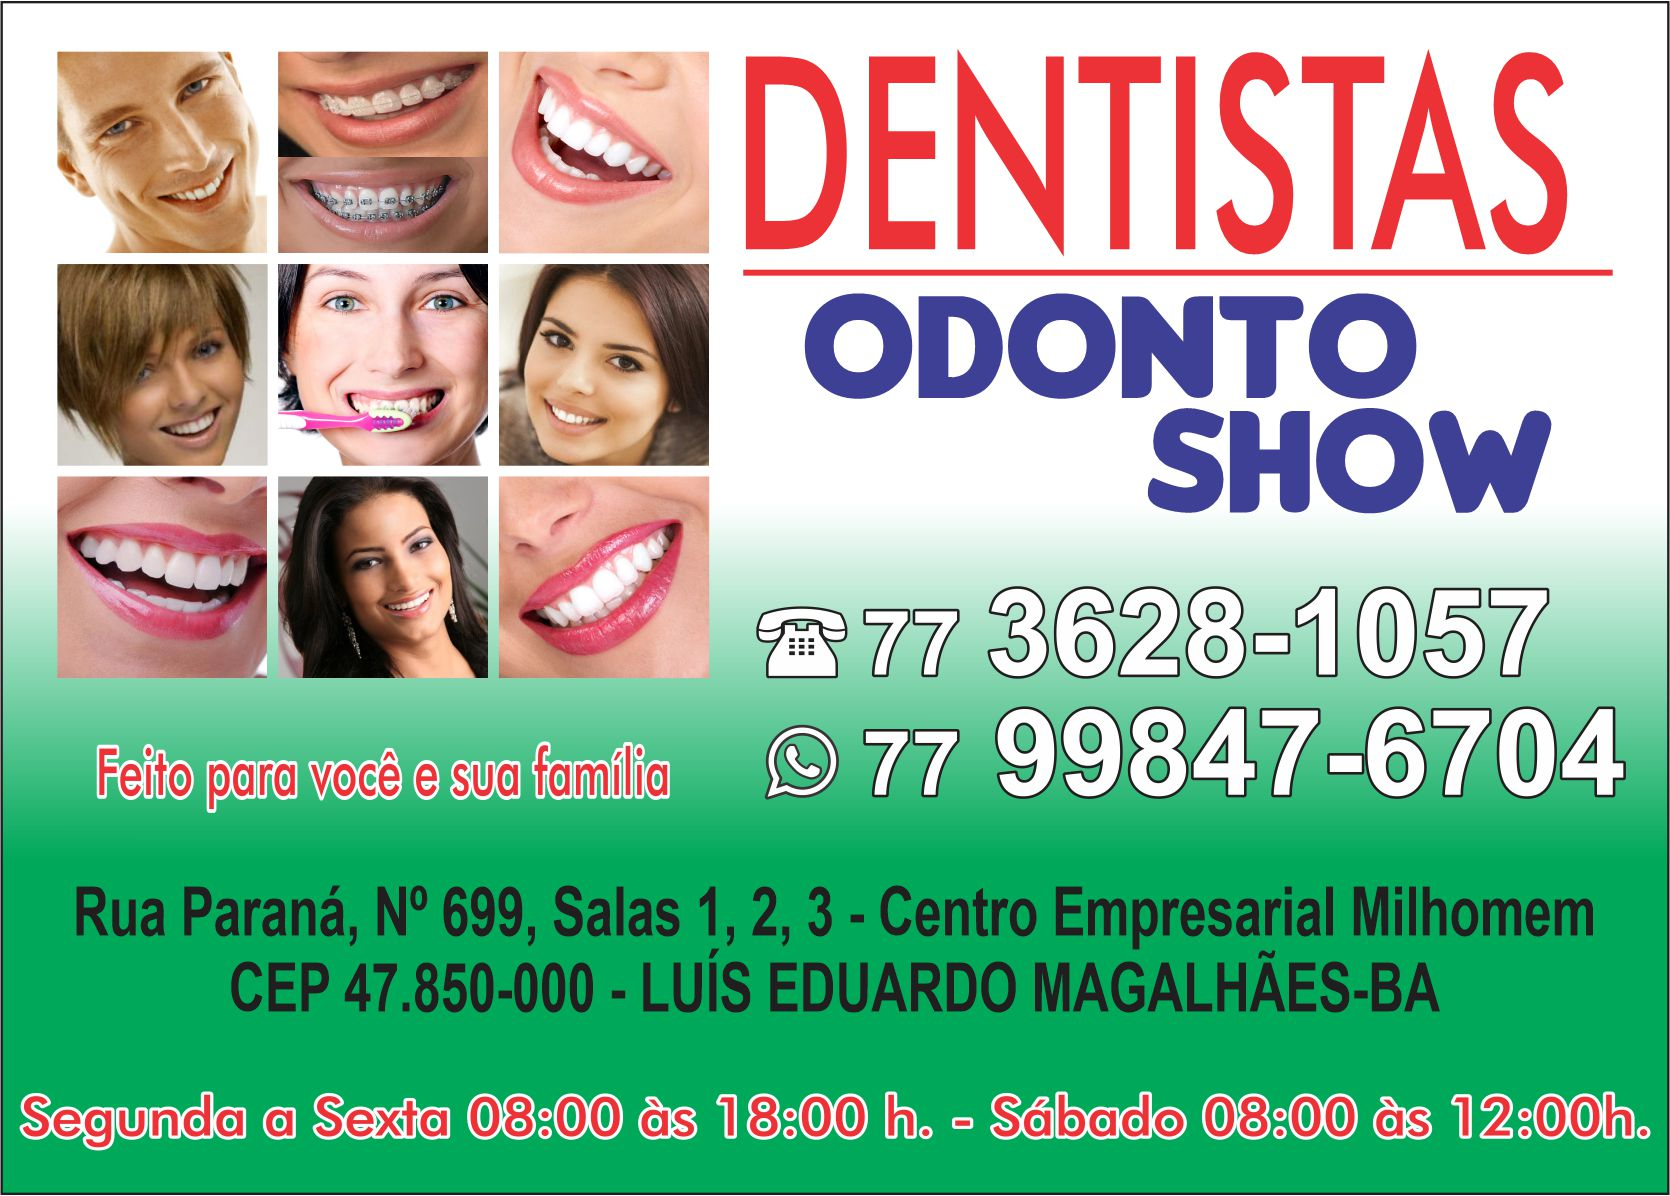 Dentista artes site